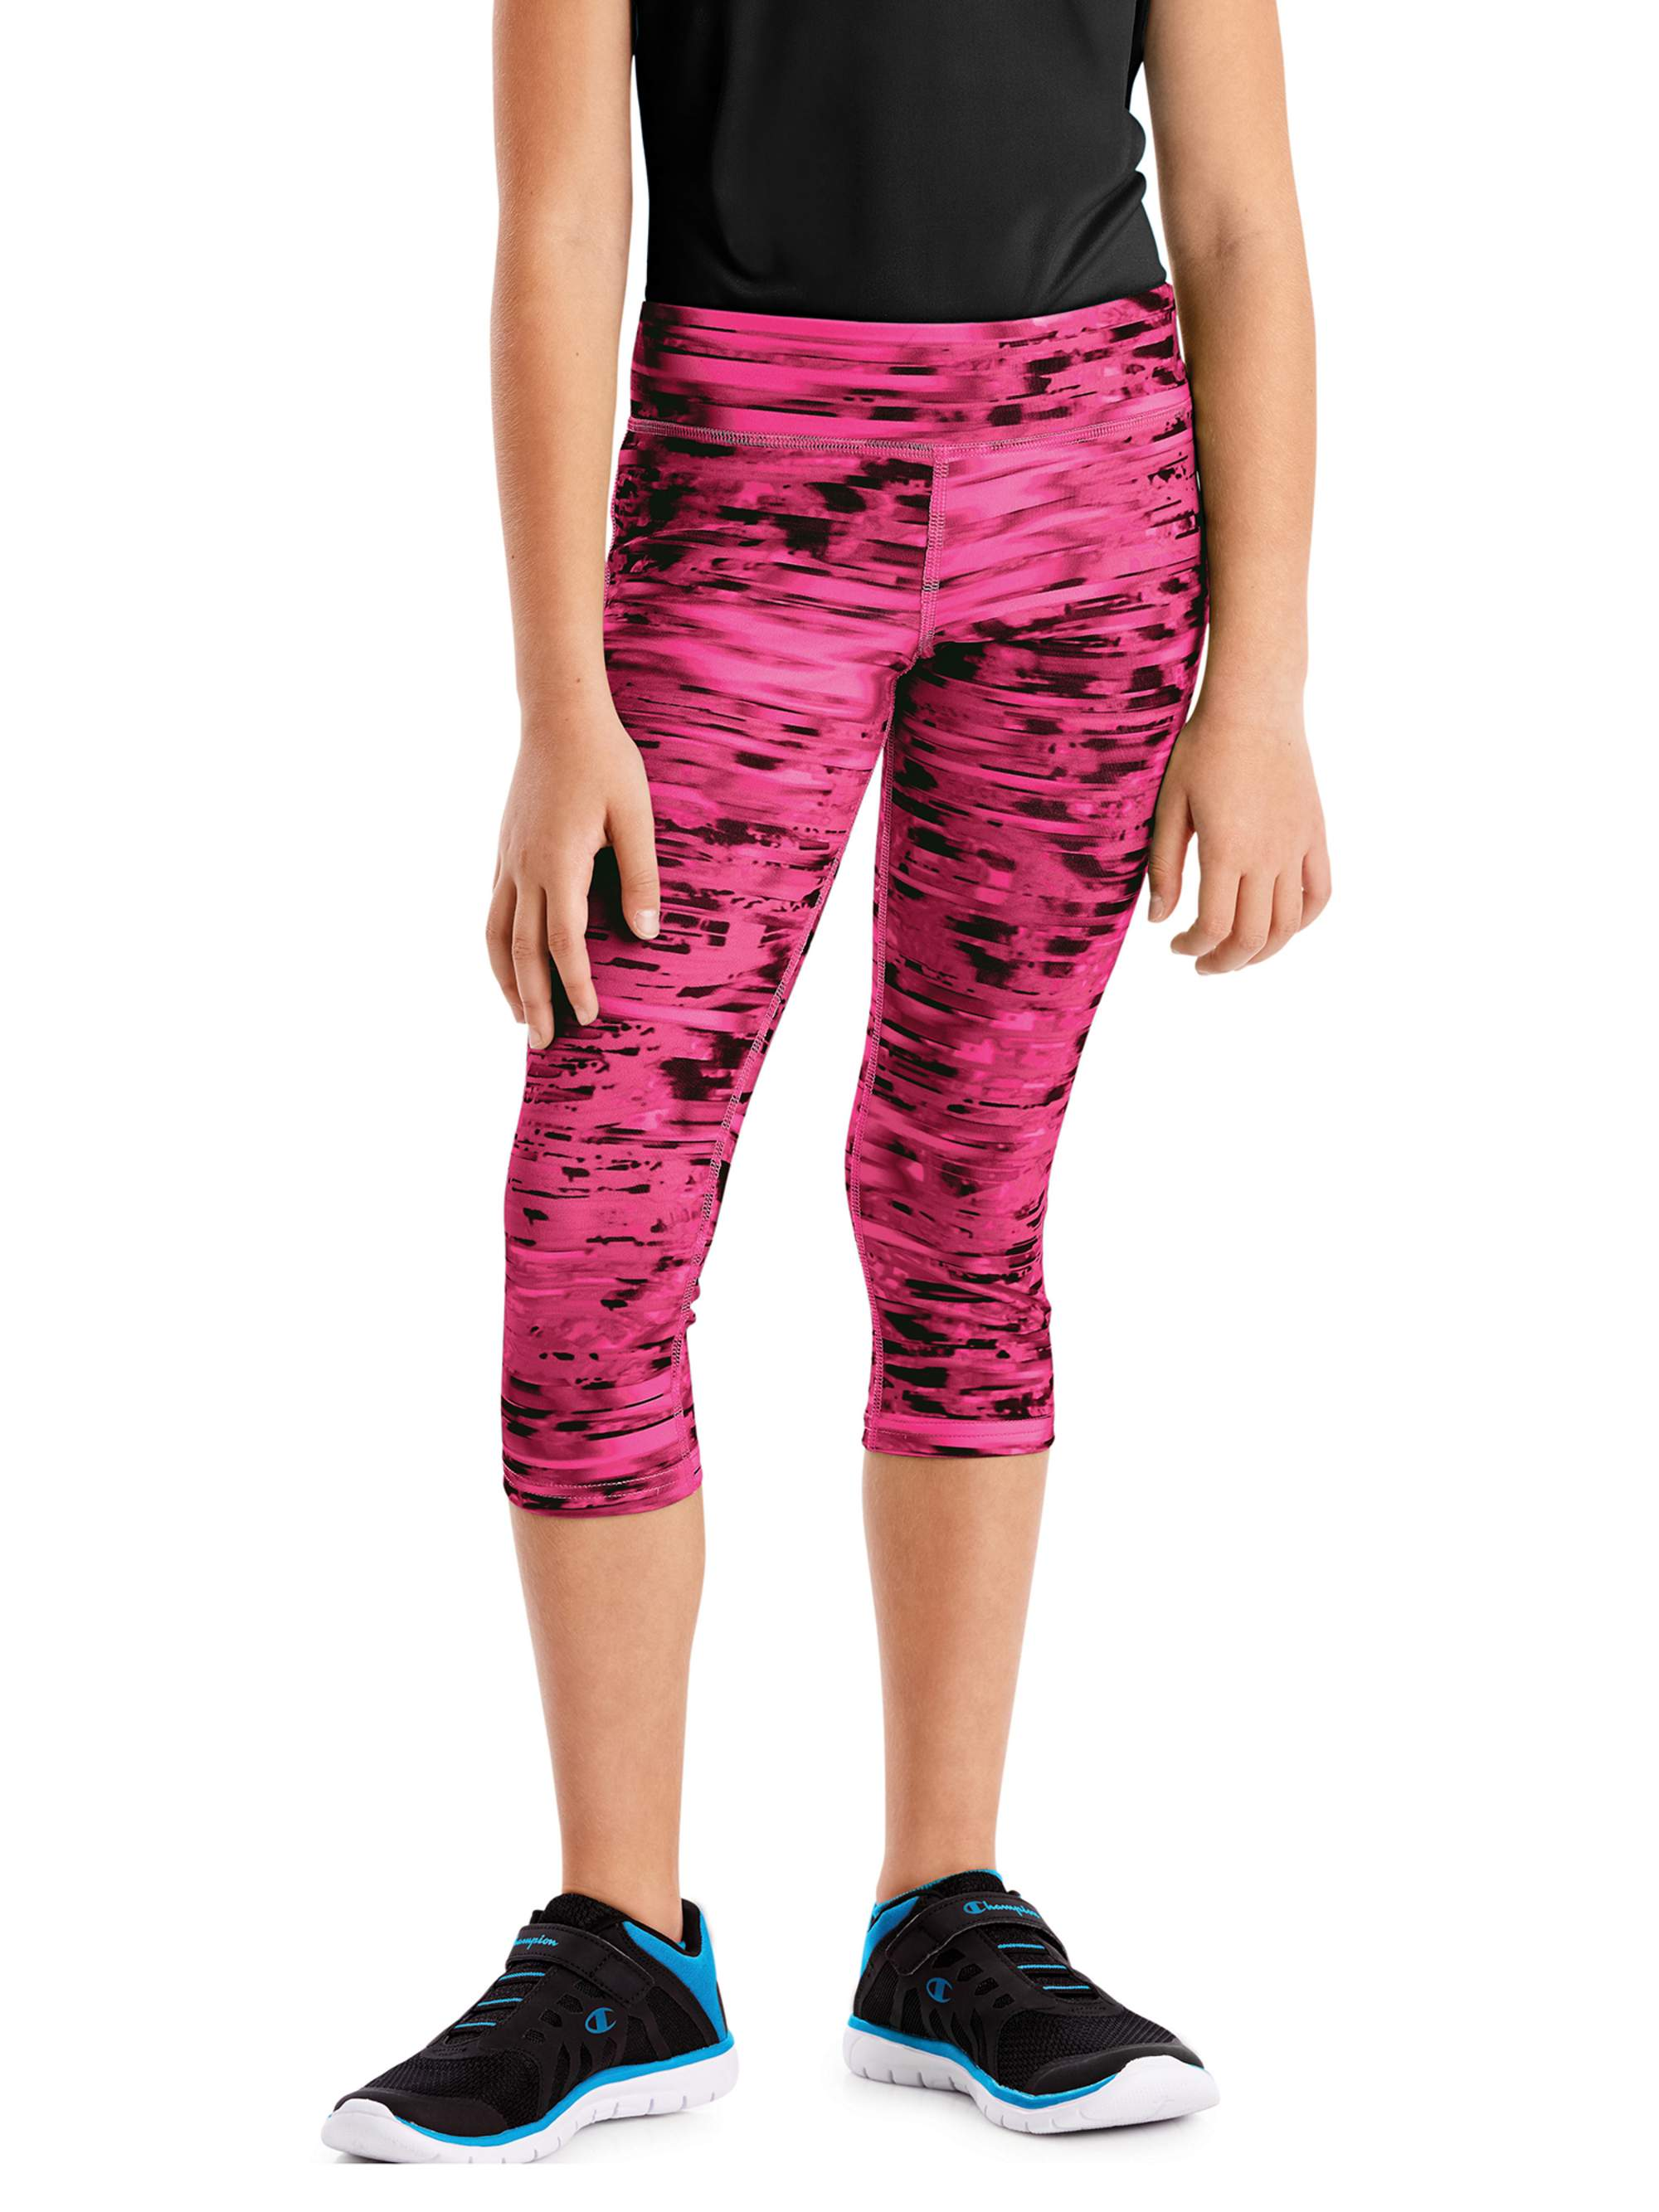 Girls' Performance Capri Leggings